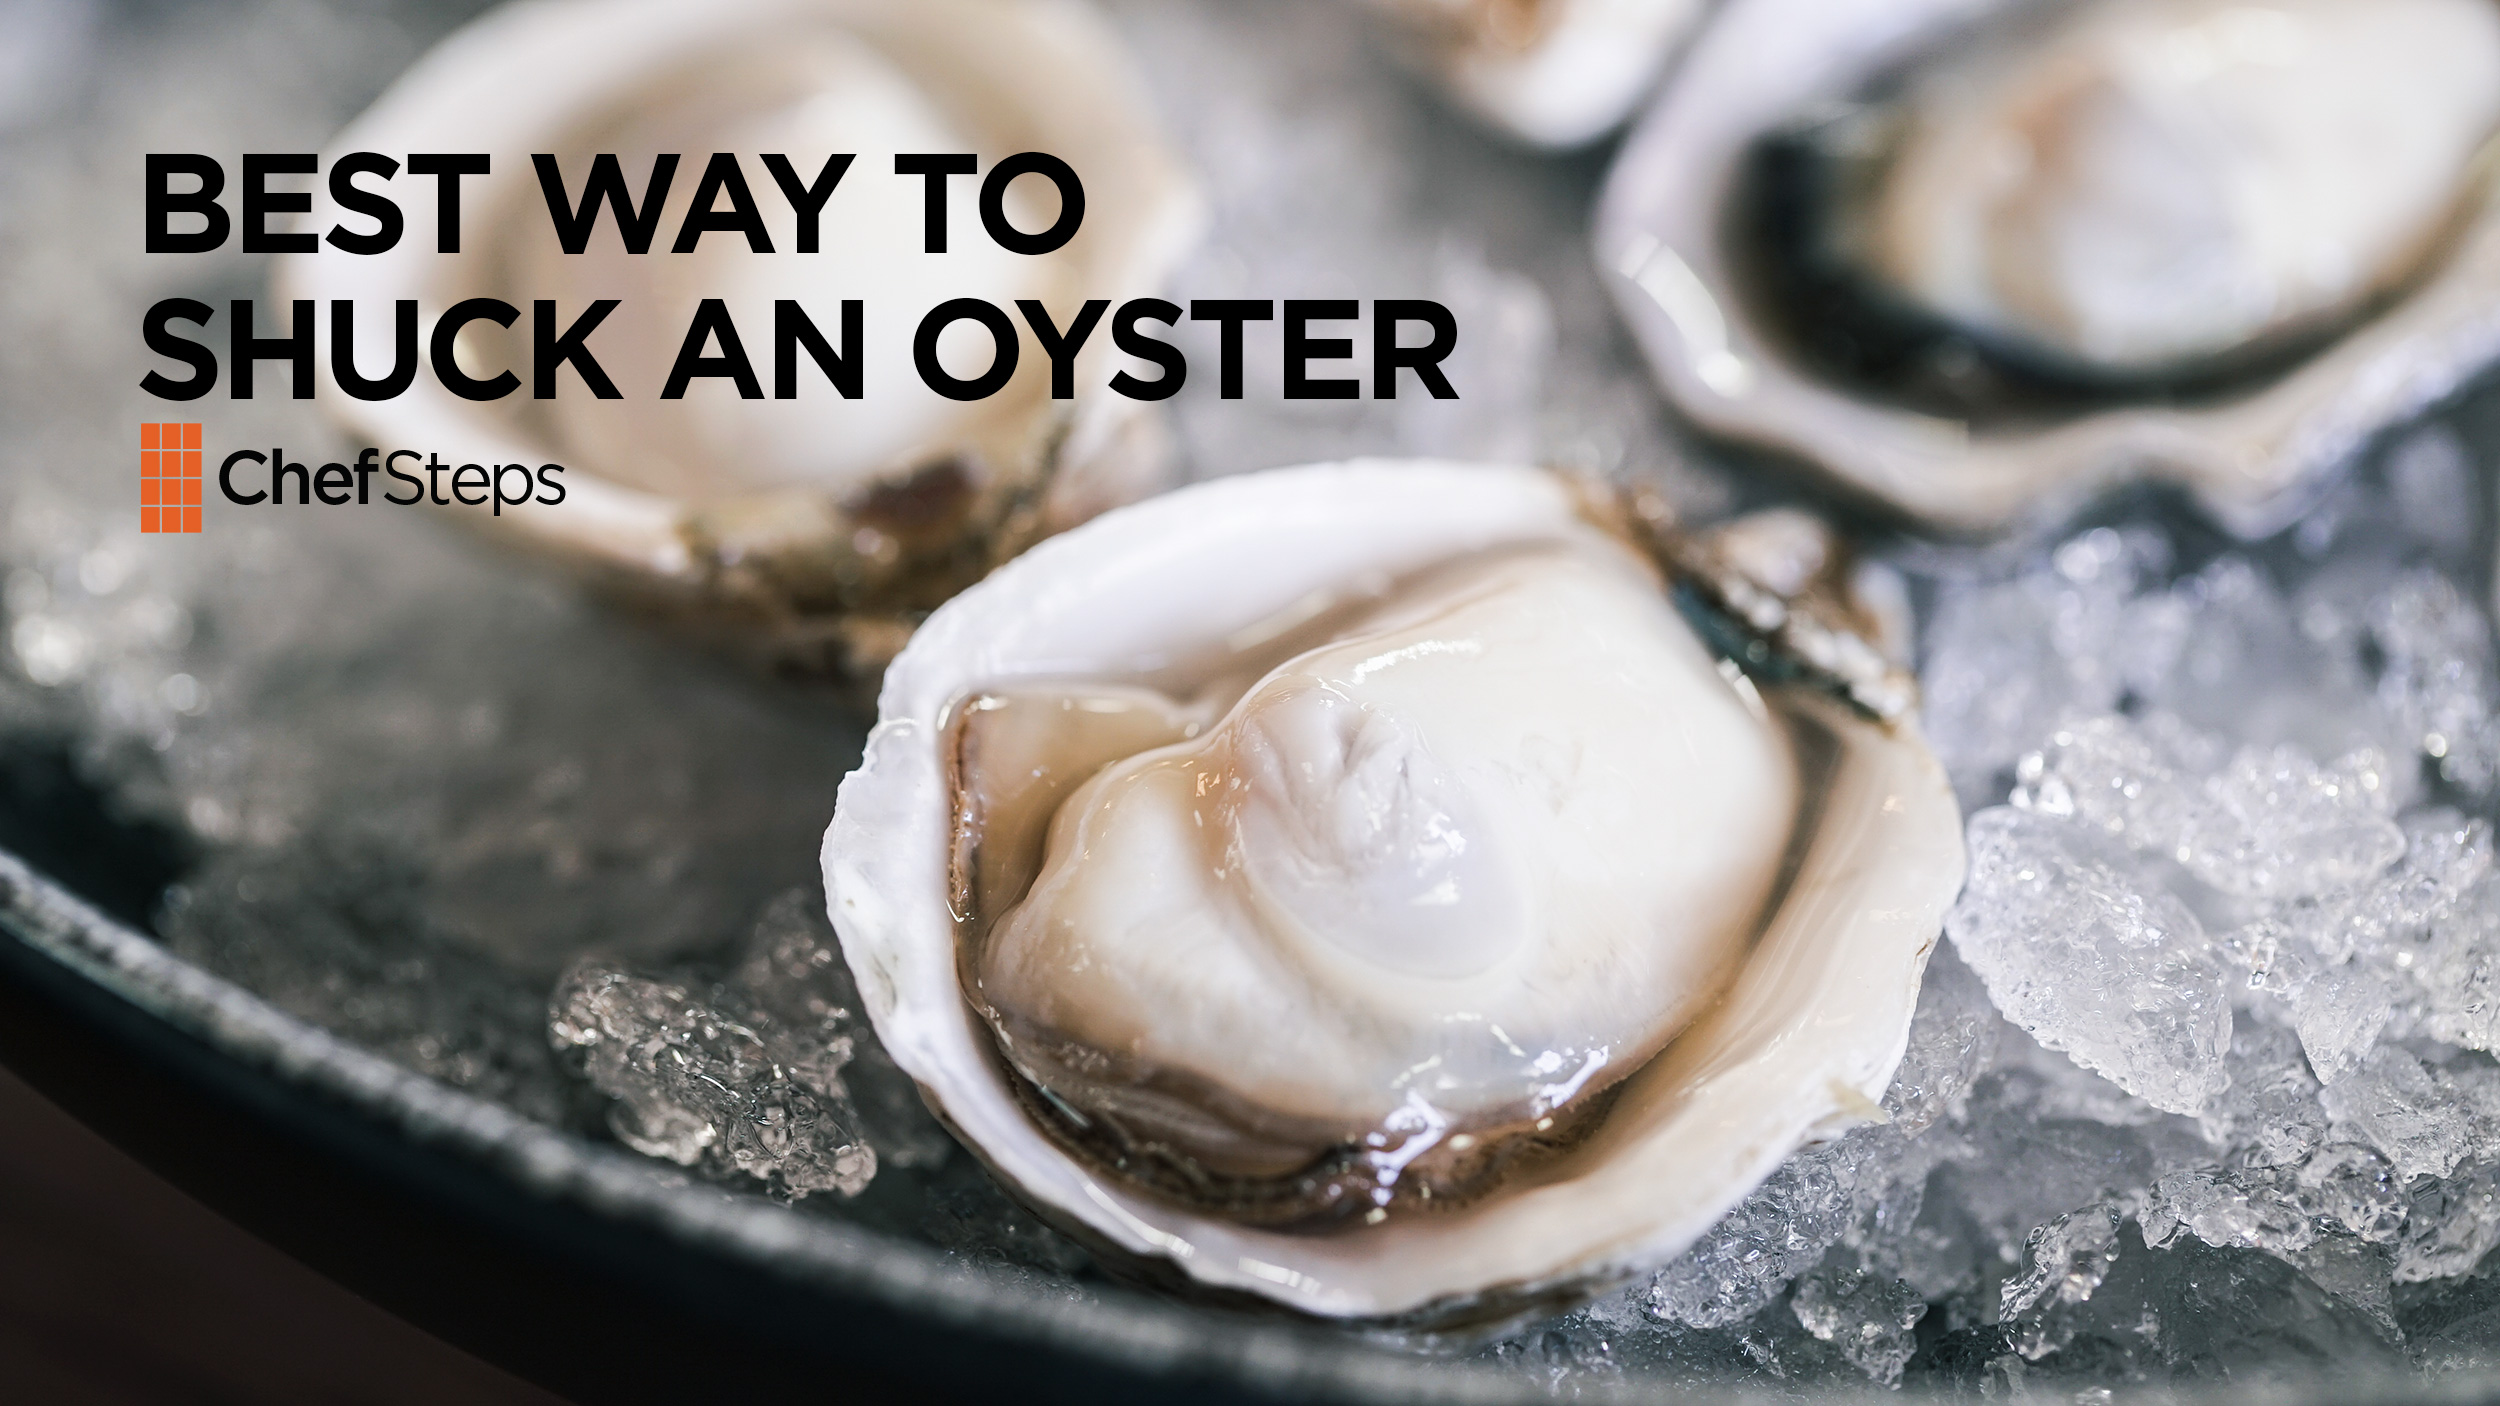 The Best Way To Shuck An Oyster Chefsteps Pbs Food